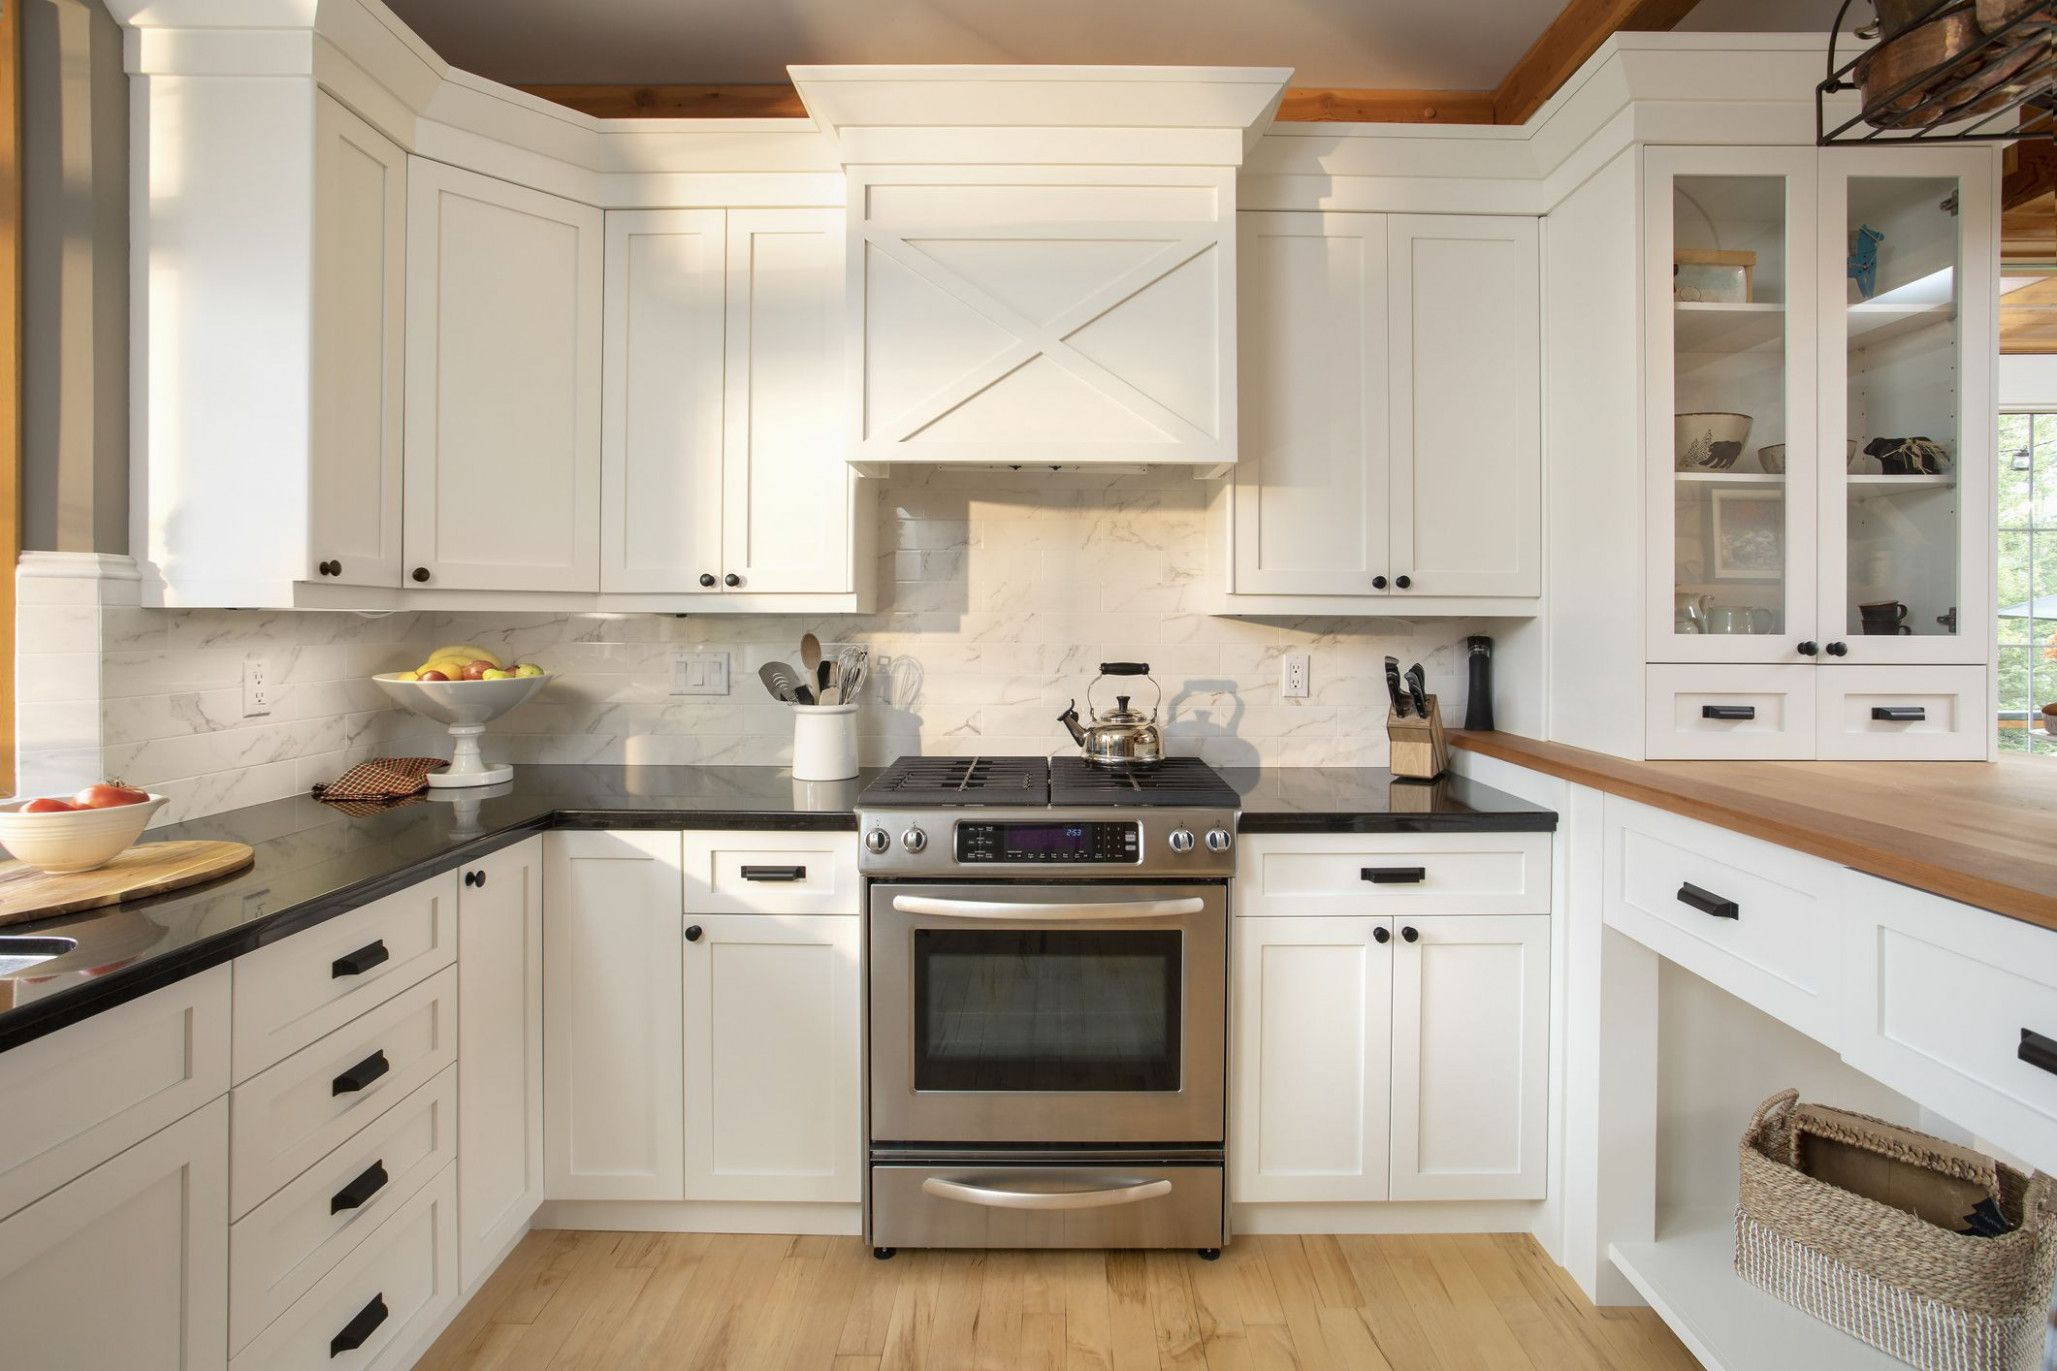 10 Great Kitchen Cabinet Stores In South Jersey Ideas That Di 2020